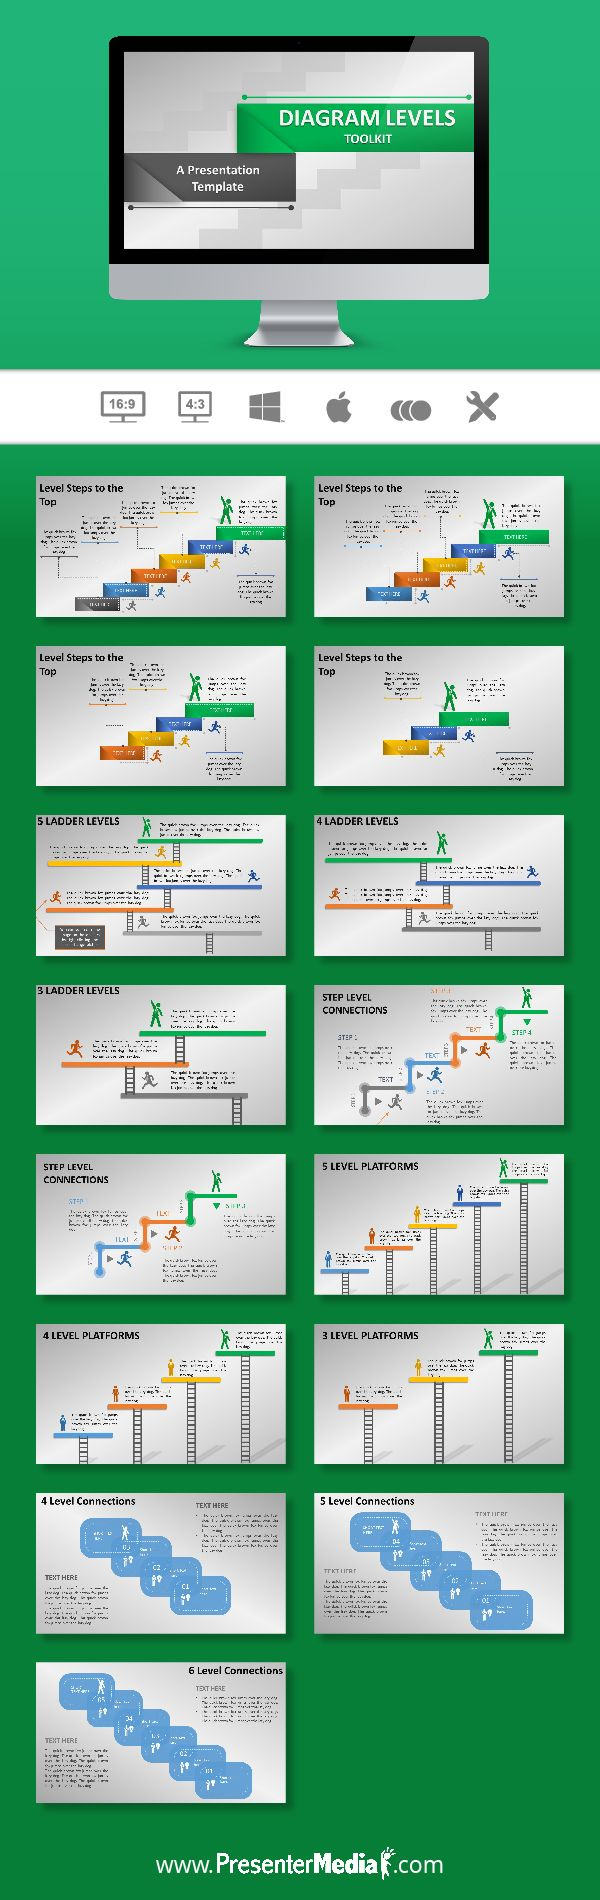 This animated widescreen template shows various slides containing diagrams of level stages which could be used to show rank priority achievement process order and growth. #infographics #presentations #powerpoint http://bit.ly/2fzb0FQ